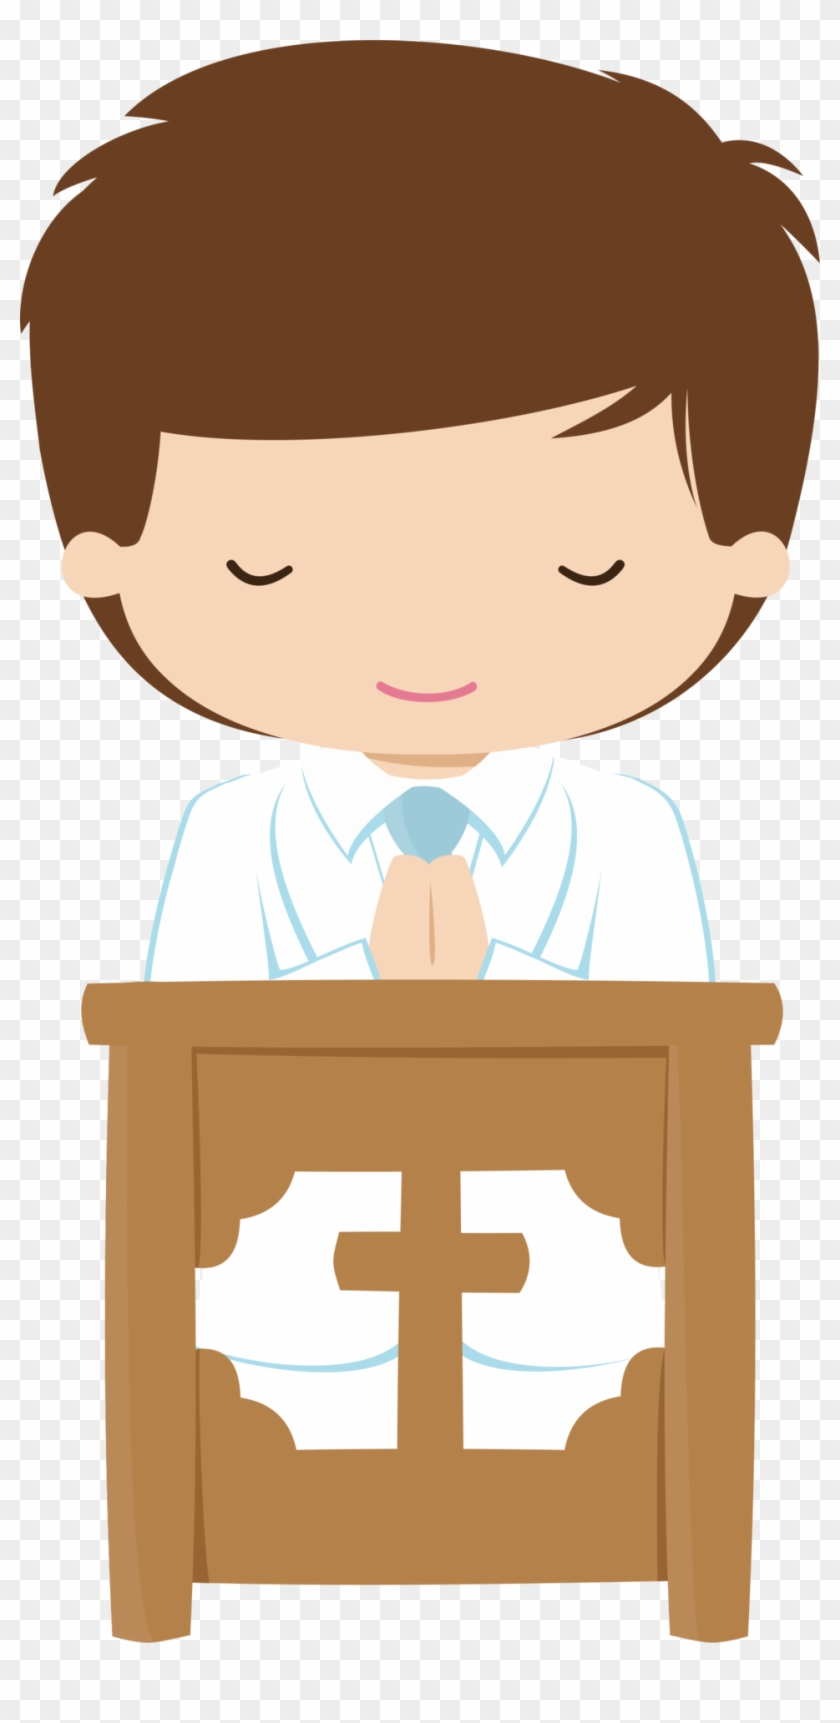 First communion boy clipart svg free download Communion Clipart Backgrounds Free - First Communion Boy Png ... svg free download